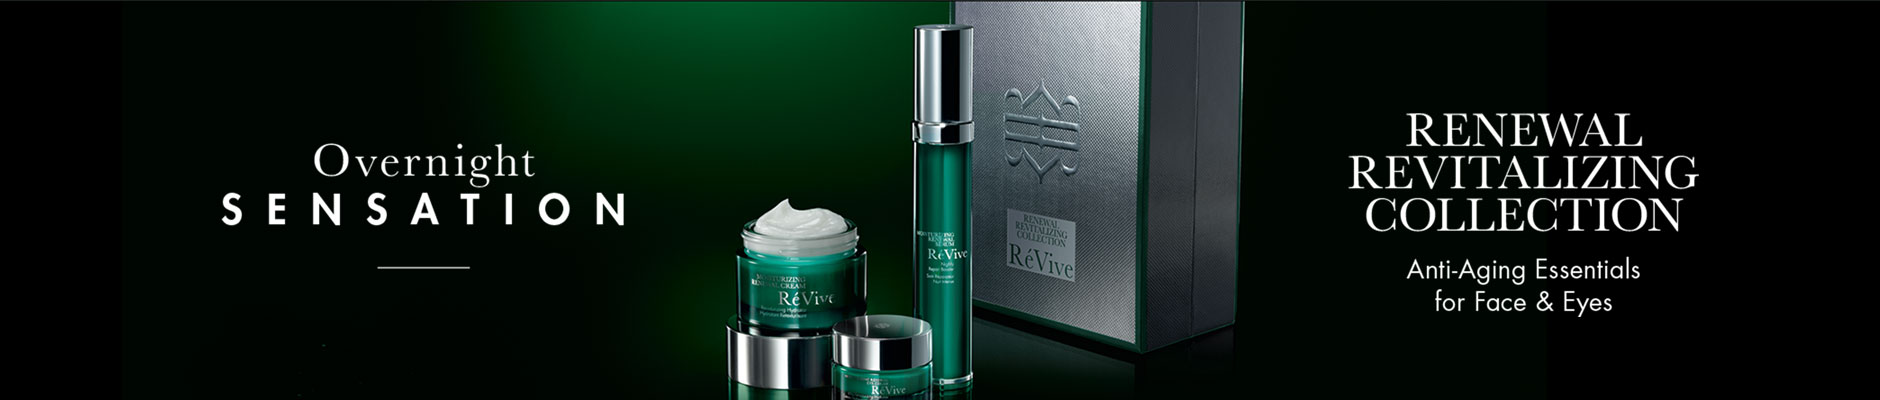 Overnight Sensation: Renewal Revitalizing Collection - Anti-Aging Essentials for Face & Eyes